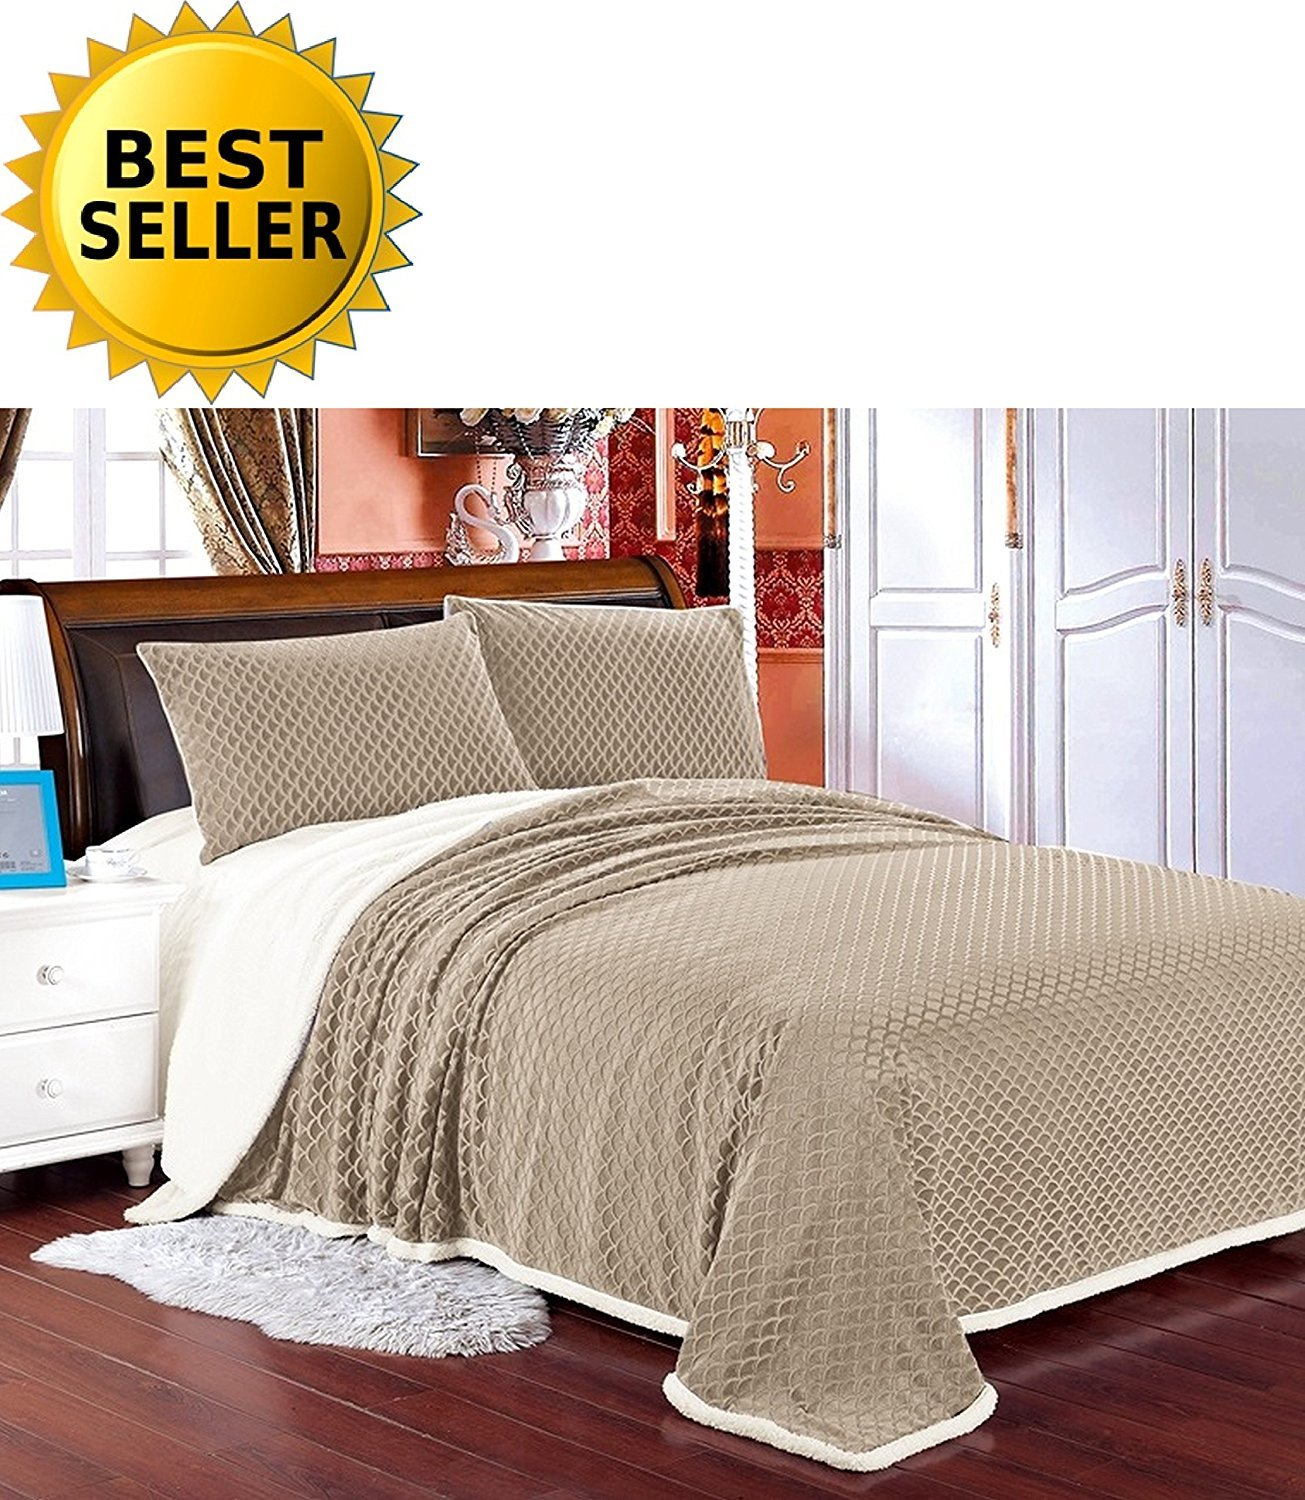 rosamond piece colored bag comforter today home bath in shipping bed chic free product cream overstock a set bedding